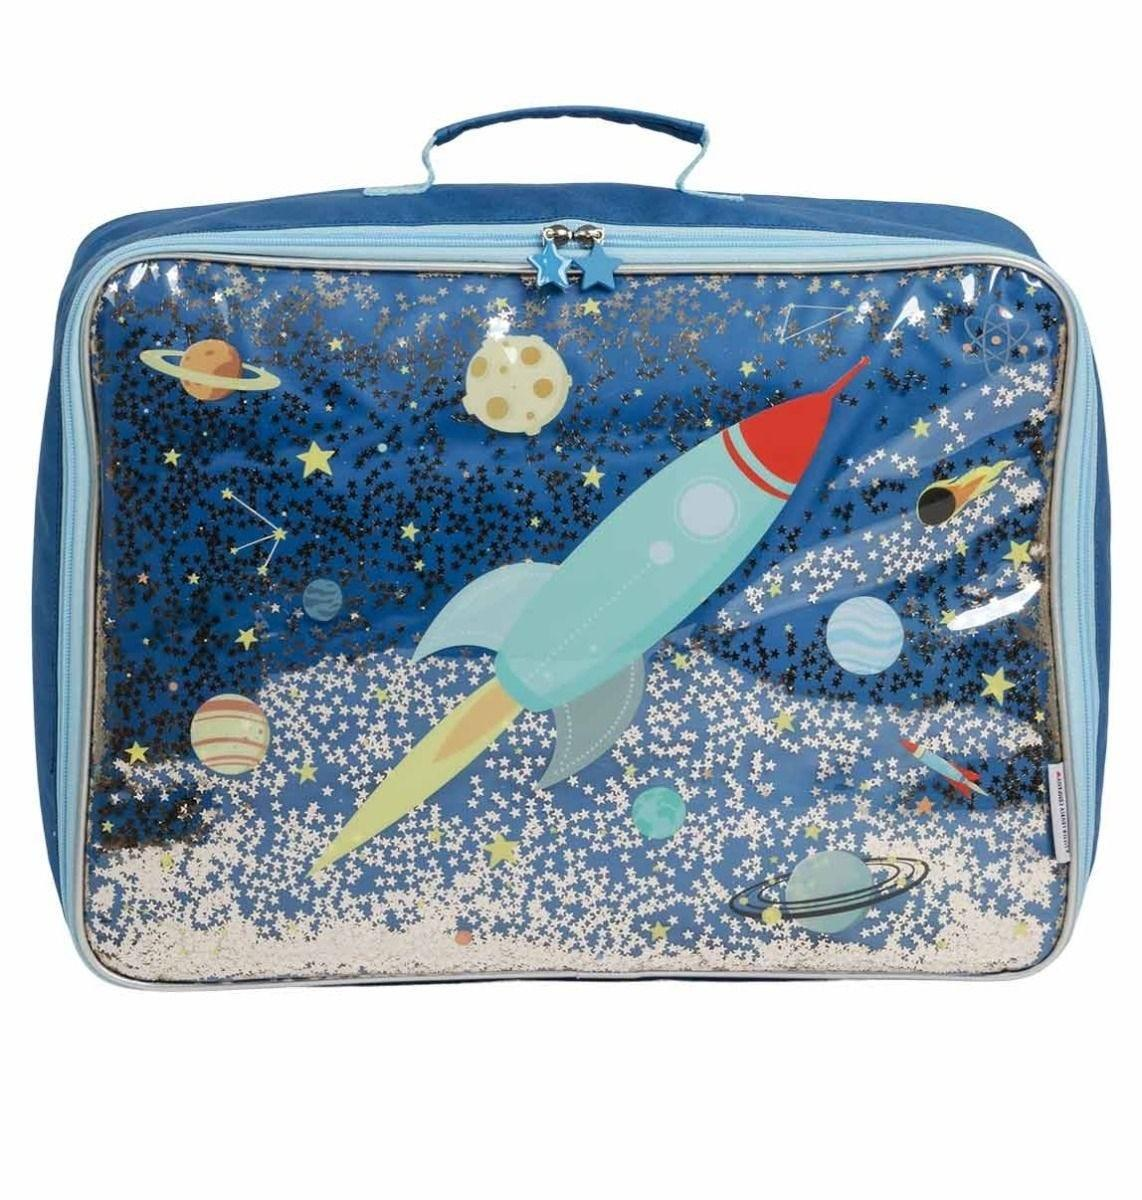 A Little Lovely Company - Suitcase: Glitter - space